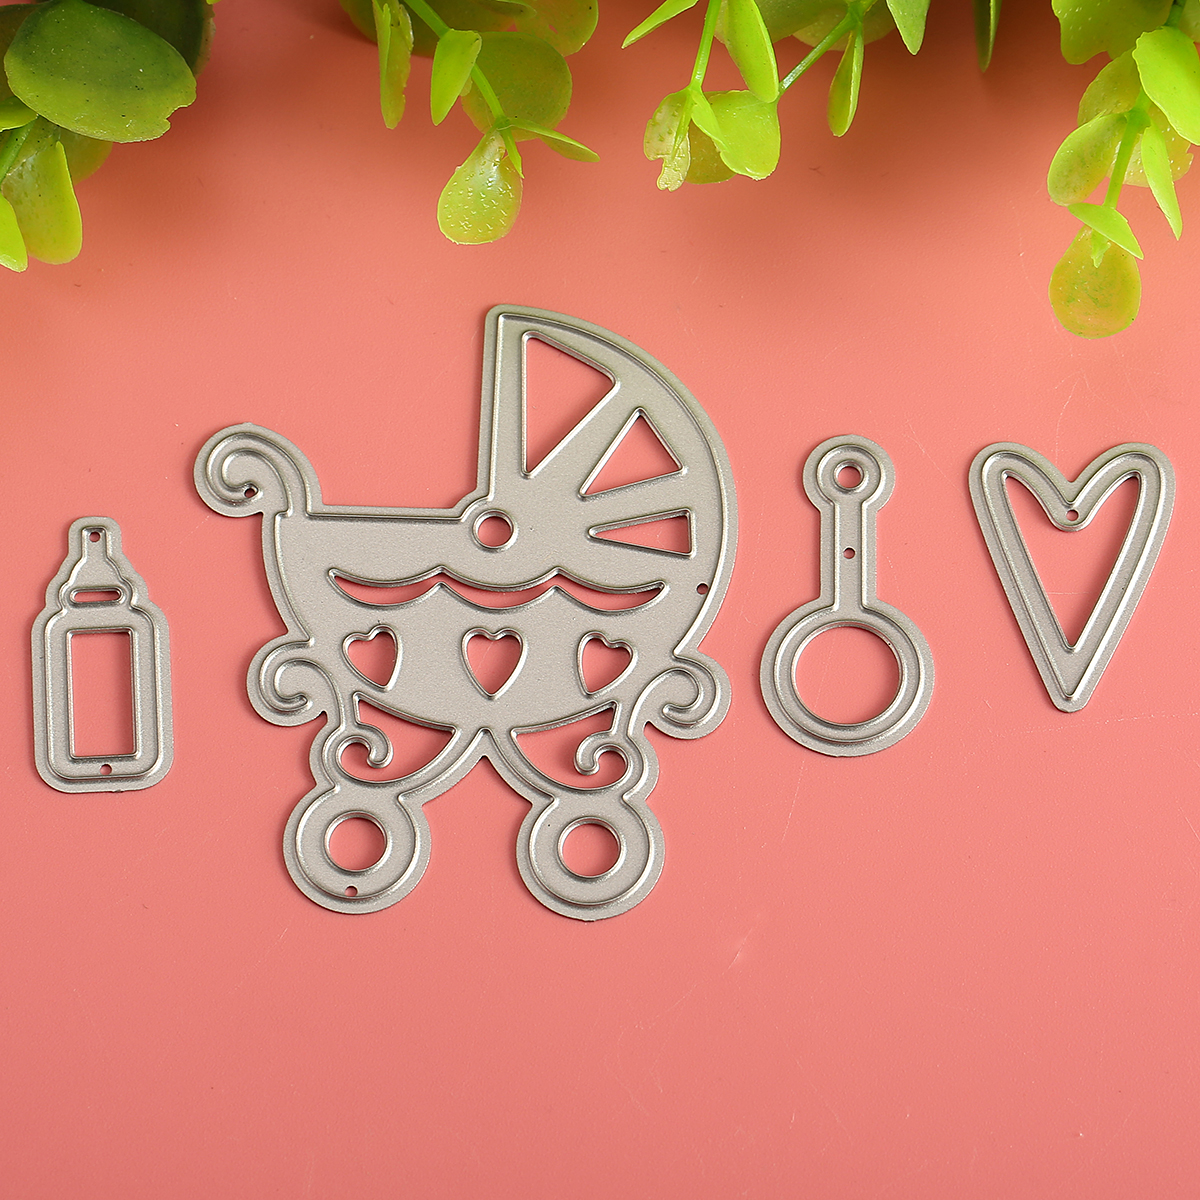 Baby Carriage Cutting Dies Stencil Scrapbook Card Album Paper Embossing Craft